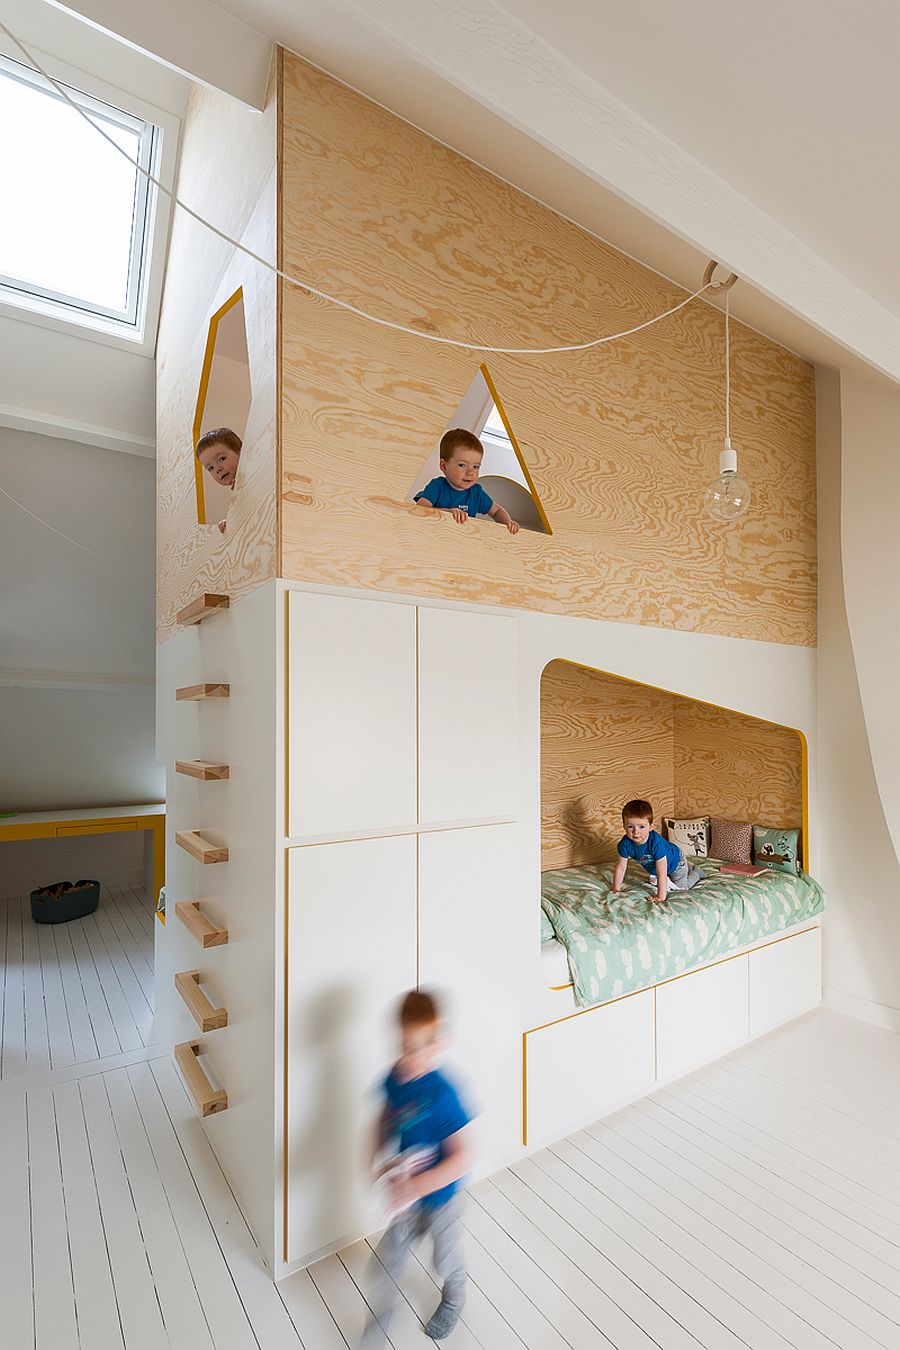 Twin niches for the beds on either side offer ample sleeping space Bespoke Brilliance: Twin Bed Wall in Kids' Room with Loft Play Zone